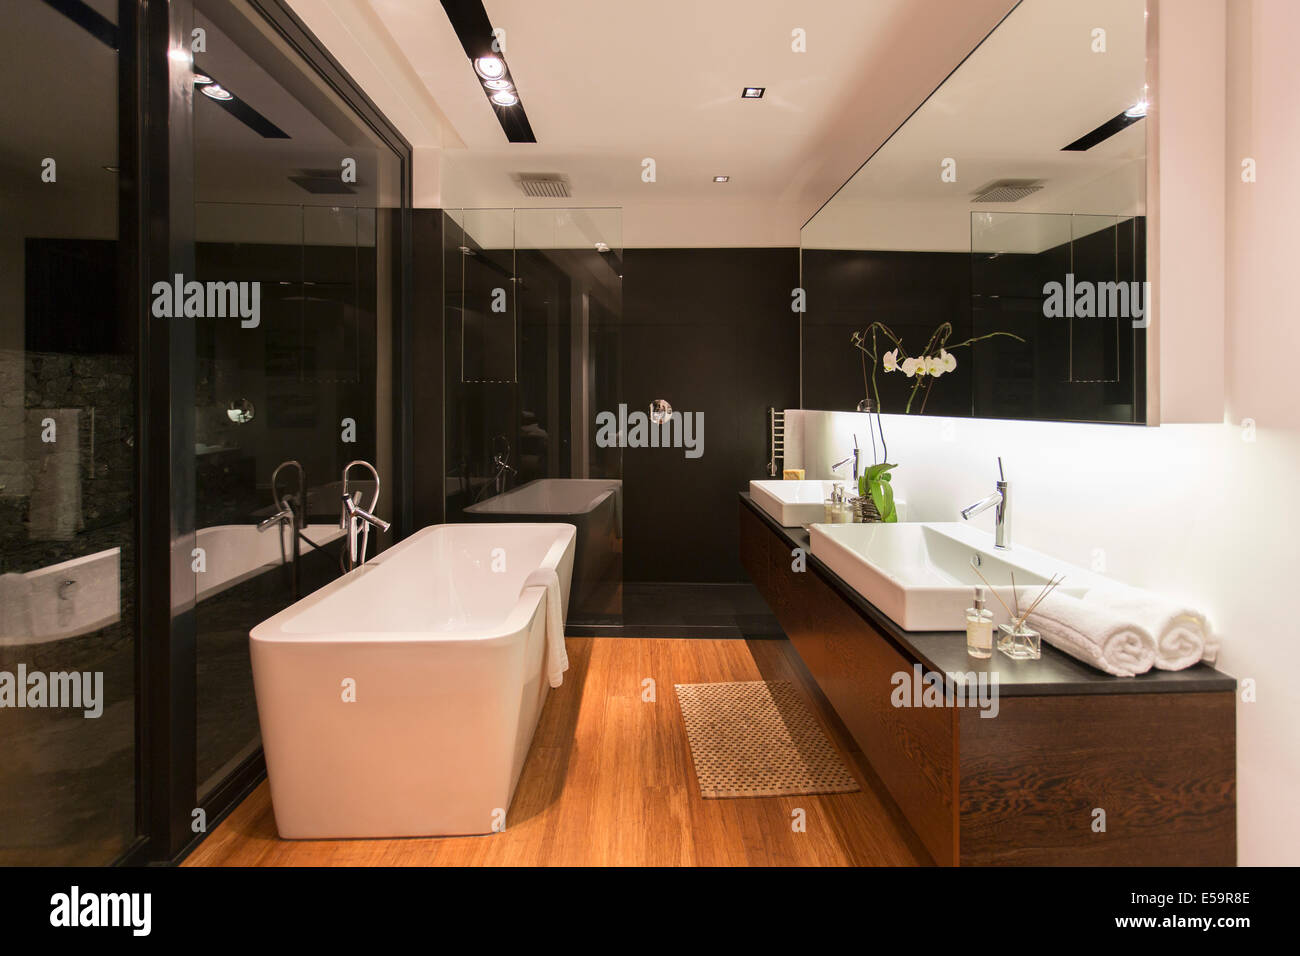 Bathtub and sinks in modern bathroom - Stock Image